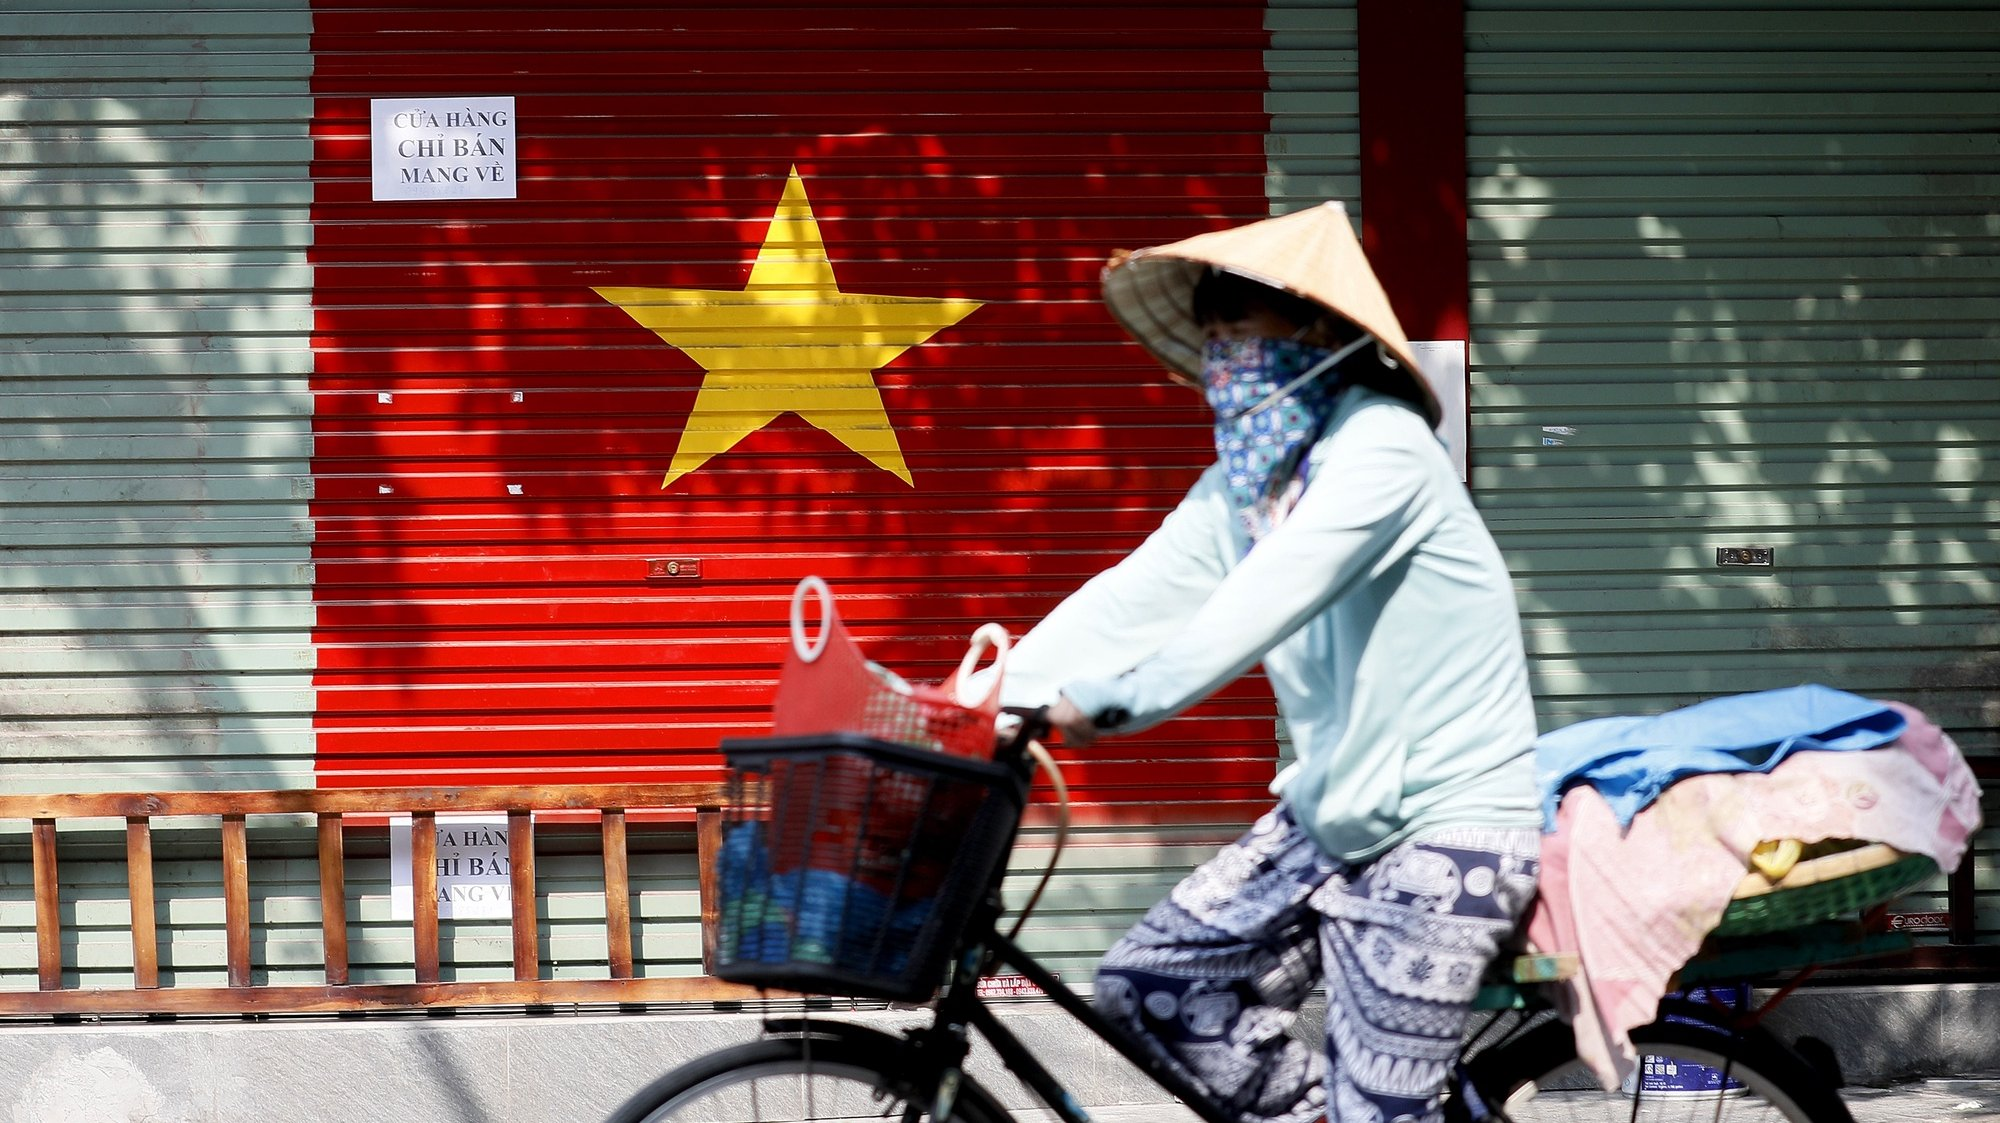 epa09352987 A woman wearing a face mask rides bicycle at a street in Hanoi, Vietnam, 19 July 2021. Vietnam tightened restrictions in 19 provinces, after nearly 6,000 new COVID-19 cases were reported in one day in the country.  EPA/LUONG THAI LINH